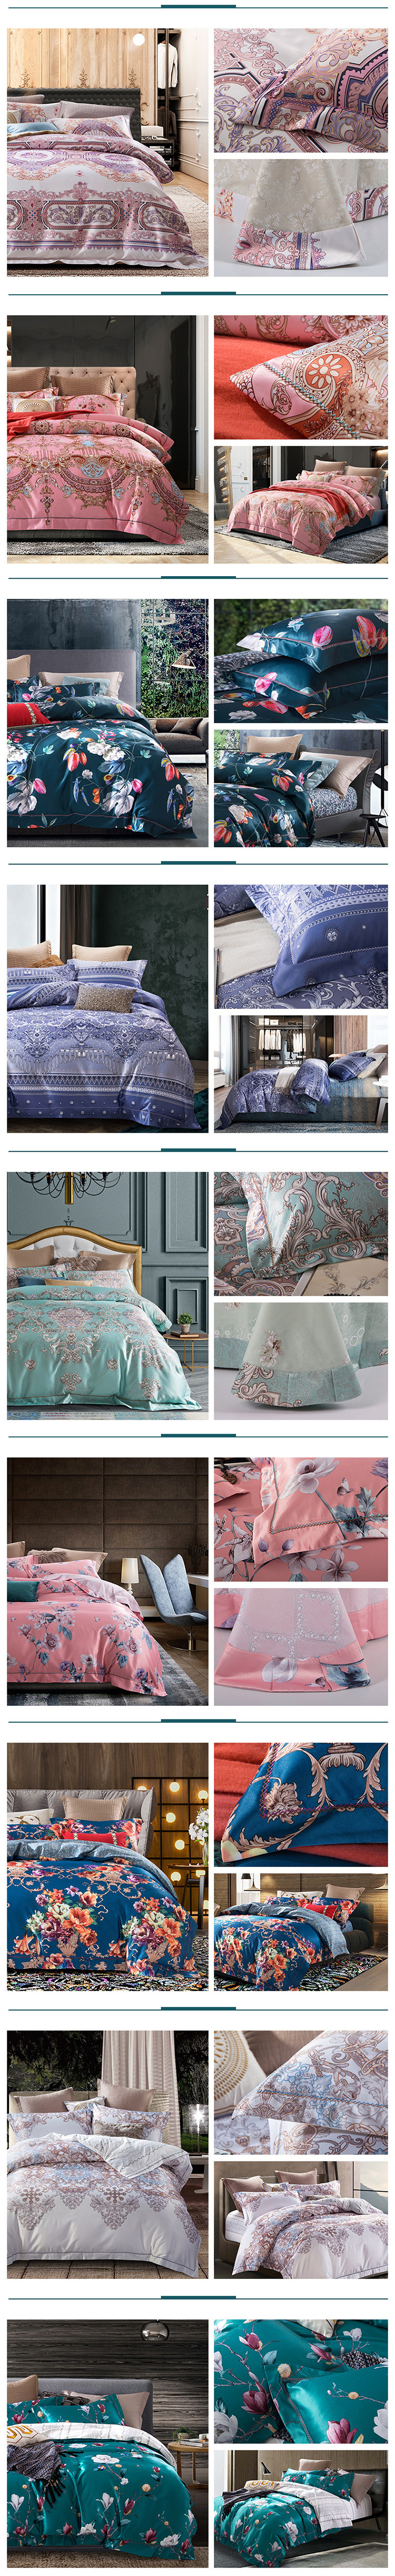 queen comforter bedding sets parure de lit adulte beddengoed Nordic retro duvet cover cotton bed sheets dekbed overtrek bed linen 03